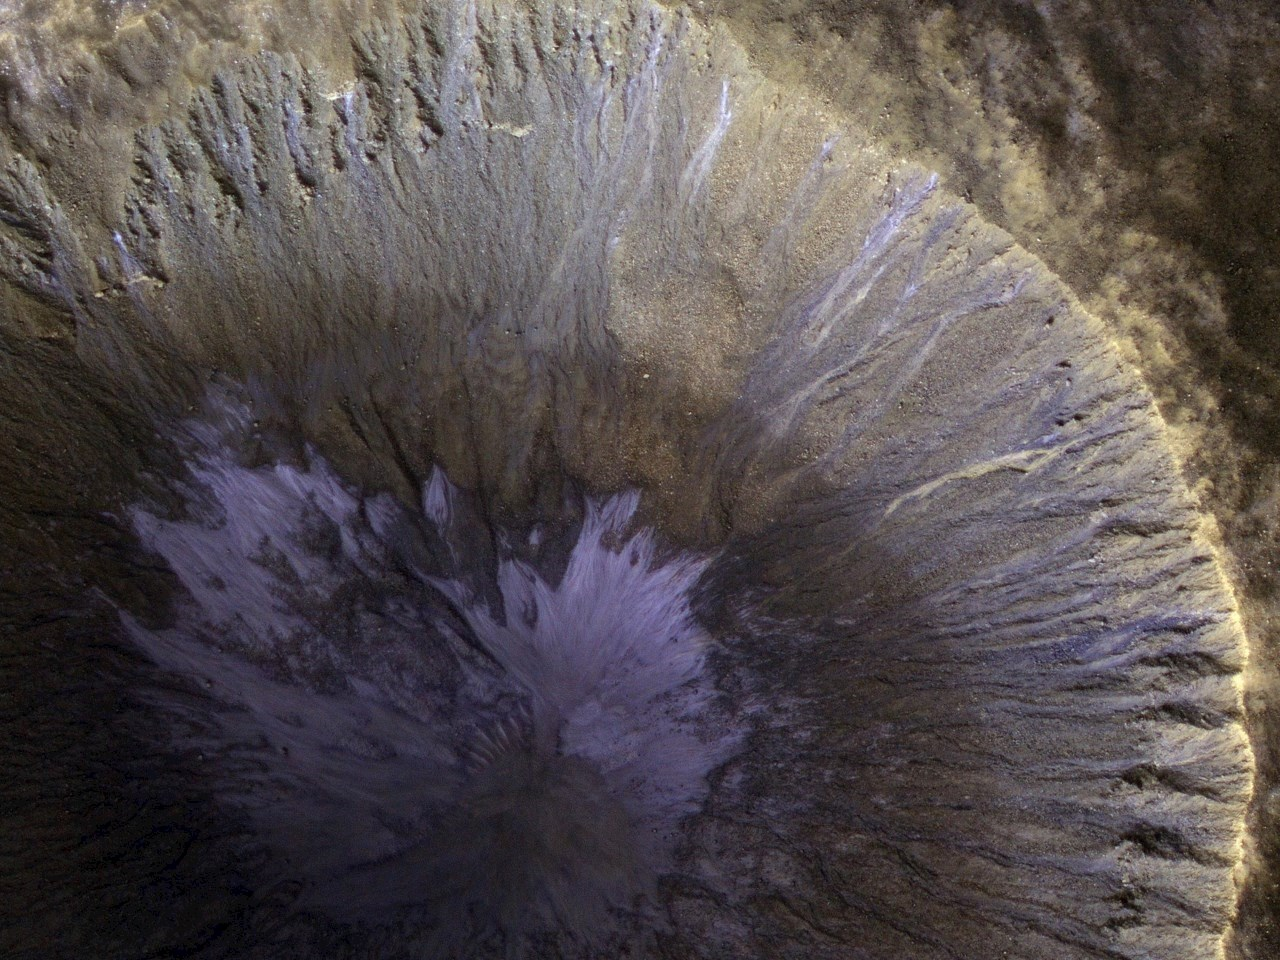 A Winter's View of a Gullied Crater